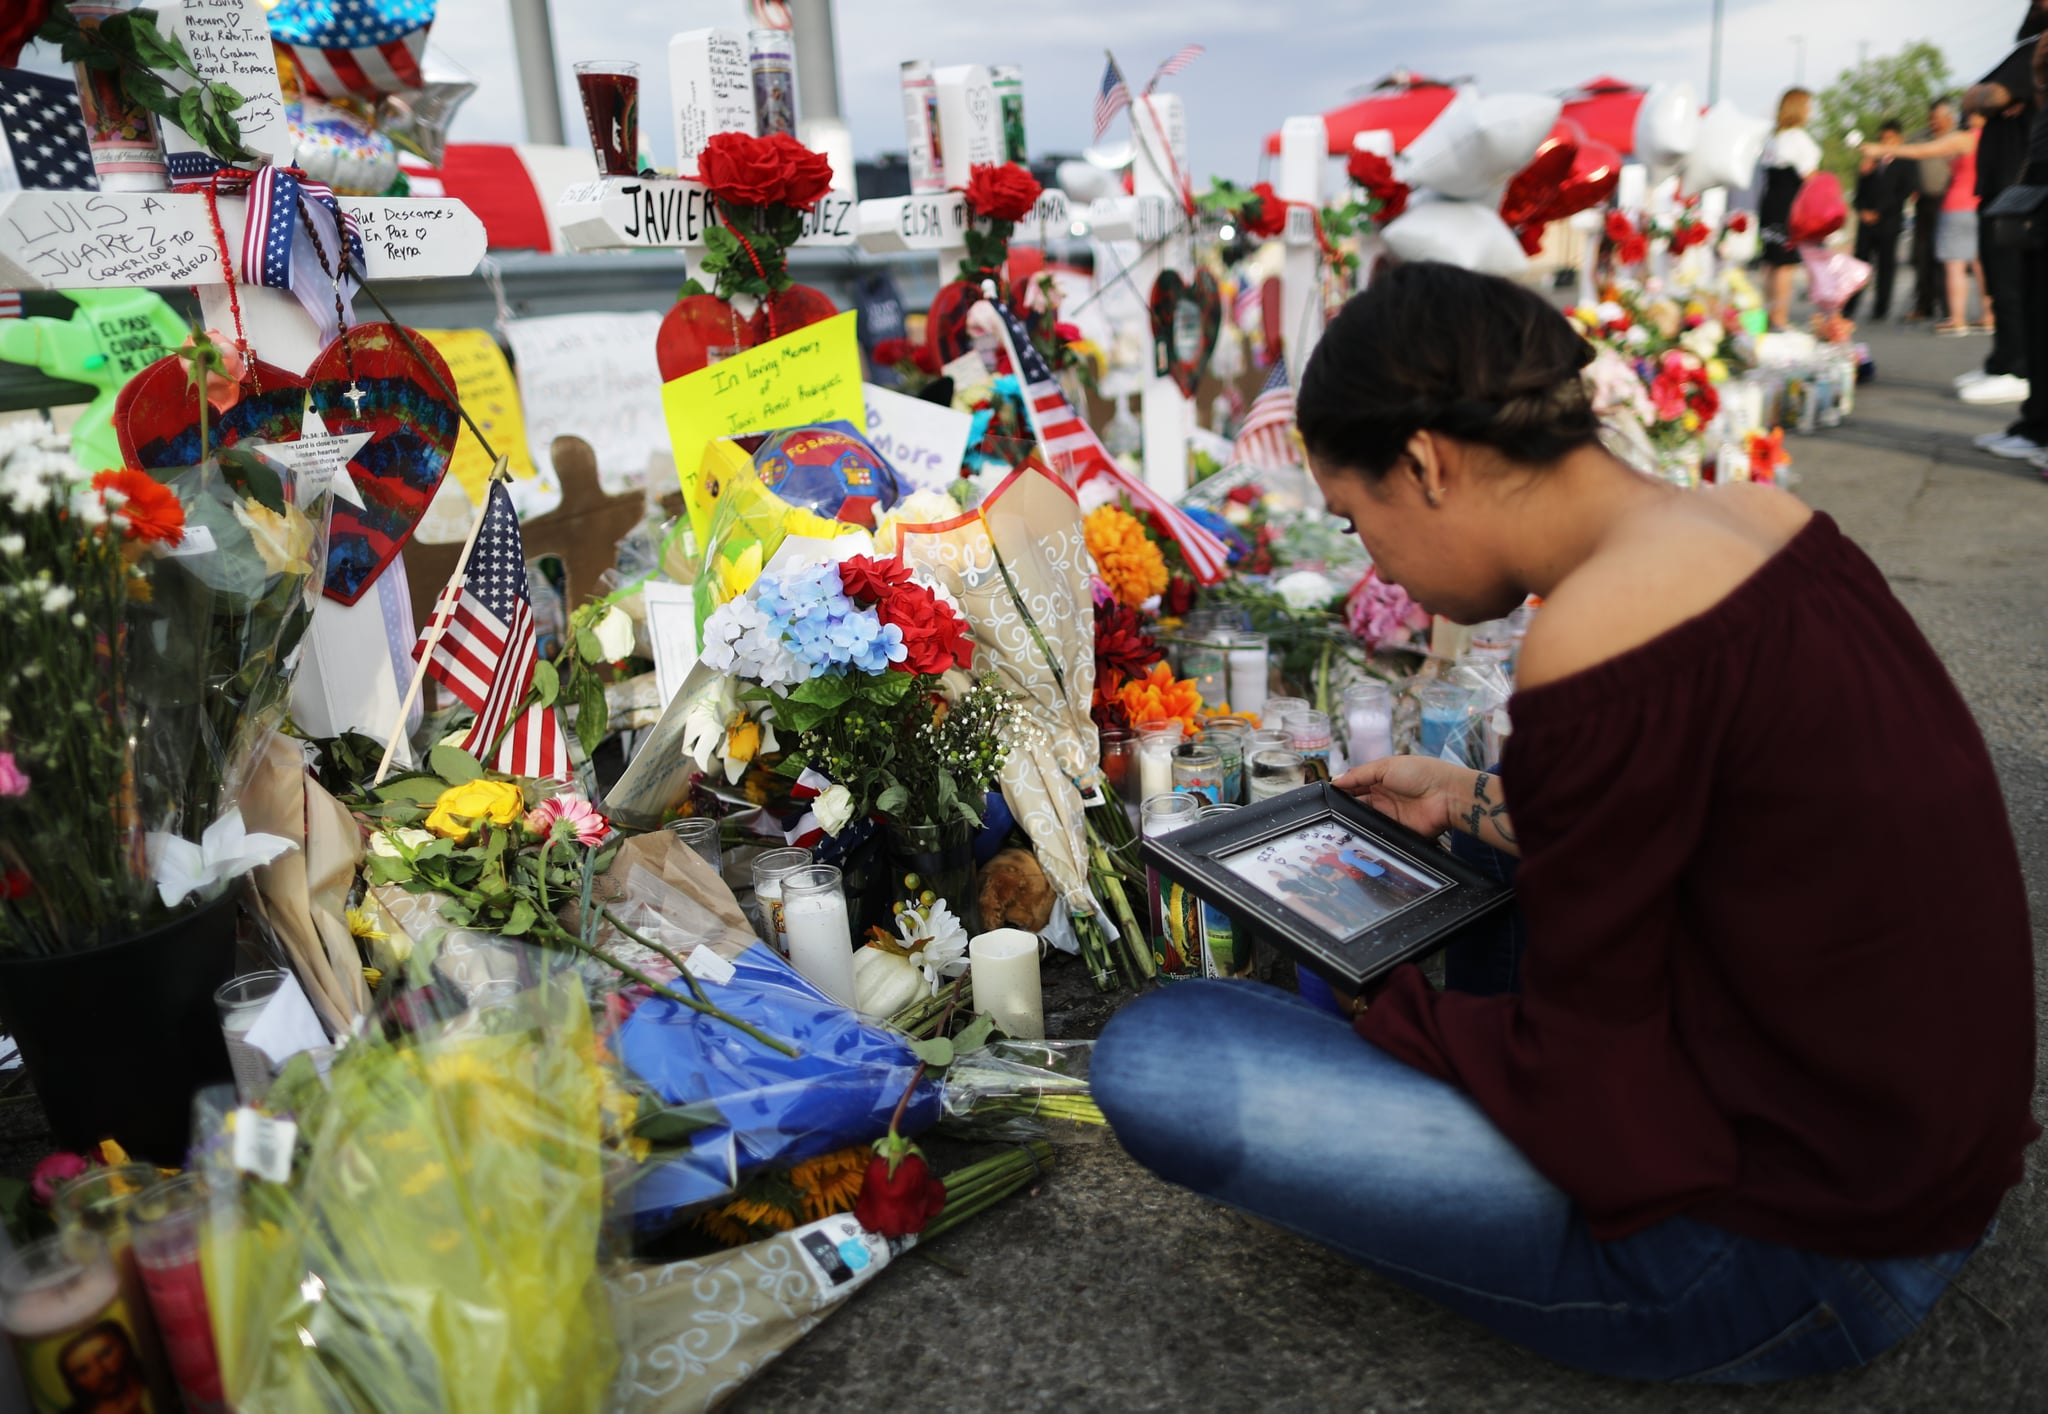 EL PASO, TEXAS - AUGUST 06: Yamileth Lopez holds a photo of her deceased friend Javier Amir Rodriguez at a makeshift memorial for victims outside Walmart, near the scene of a mass shooting which left at least 22 people dead, on August 6, 2019 in El Paso, Texas.  Rodriguez was a sophomore at Horizon High School and was killed in the shooting. A 21-year-old white male suspect remains in custody in El Paso, which sits along the U.S.-Mexico border. President Donald Trump plans to visit the city August 7.  (Photo by Mario Tama/Getty Images)